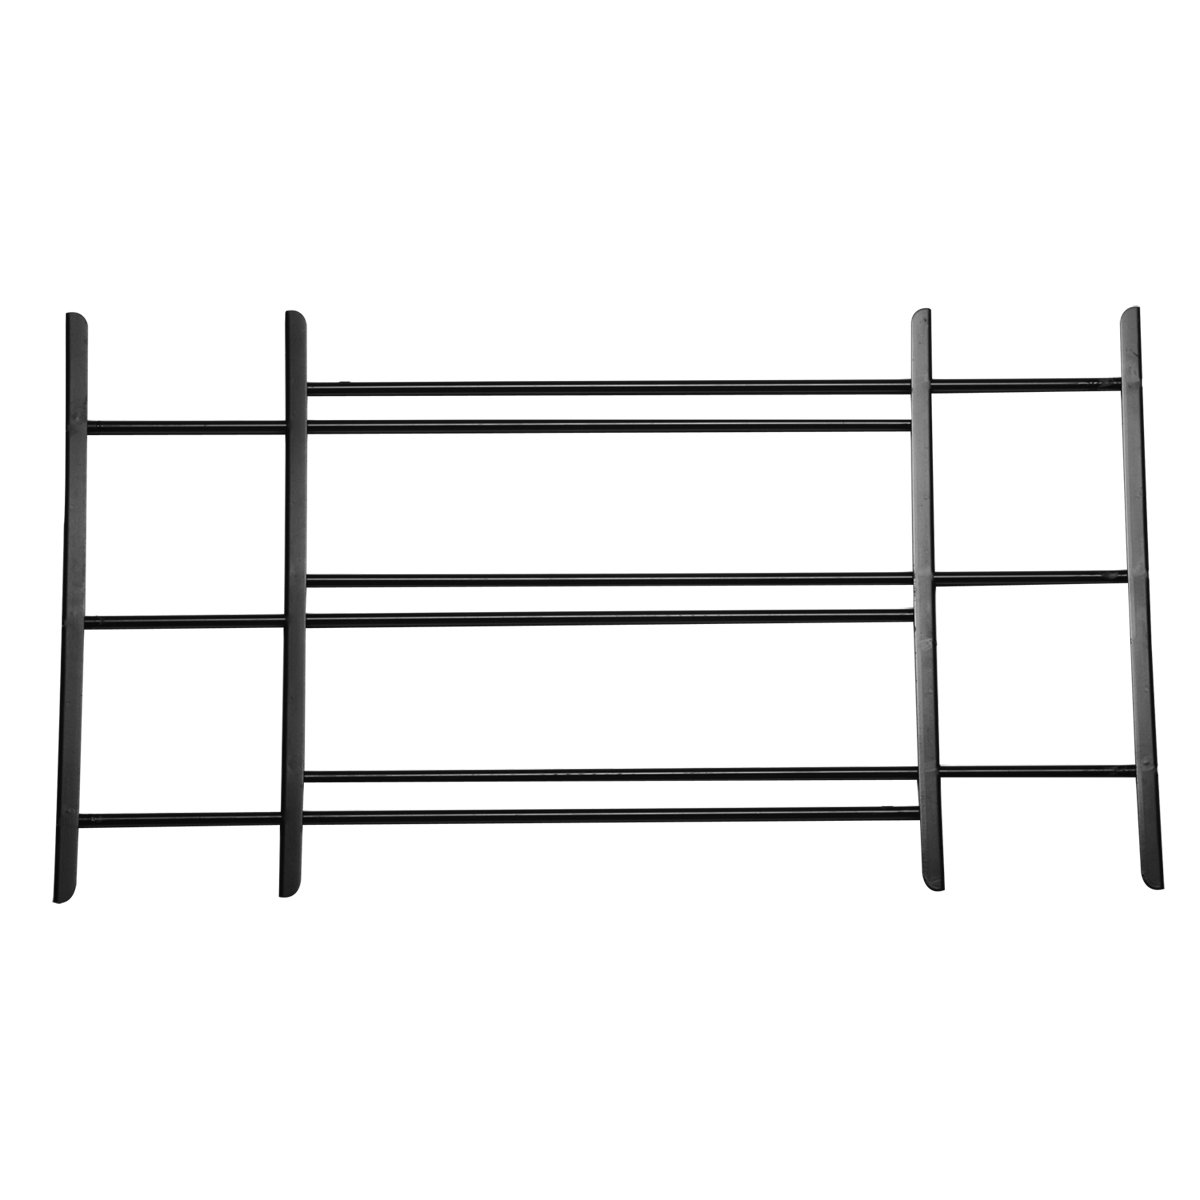 Knape & Vogt John Sterling Non-Opening Style 3-Bar Child Safety and Window Guard, Black, 1123-DB by Knape & Vogt